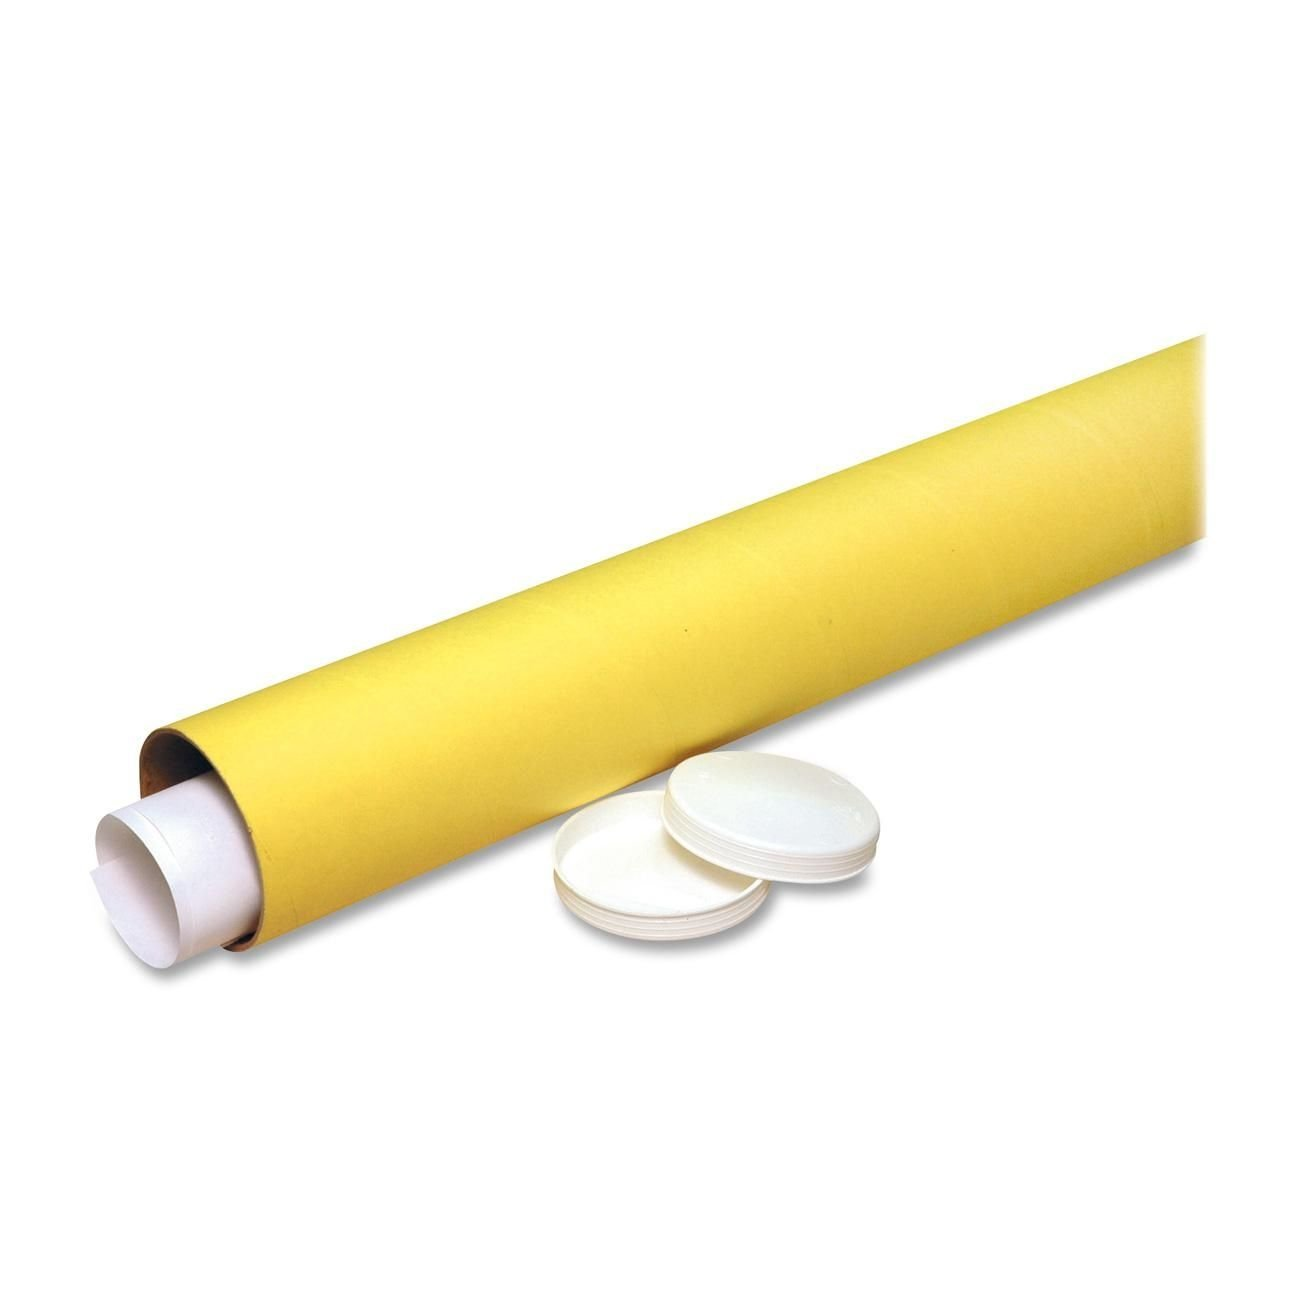 Nature Saver Economy Mailing Tube -37 -Fiberboard -25/Carton -Yellow Kraft S.P. Richards CA NAT01512